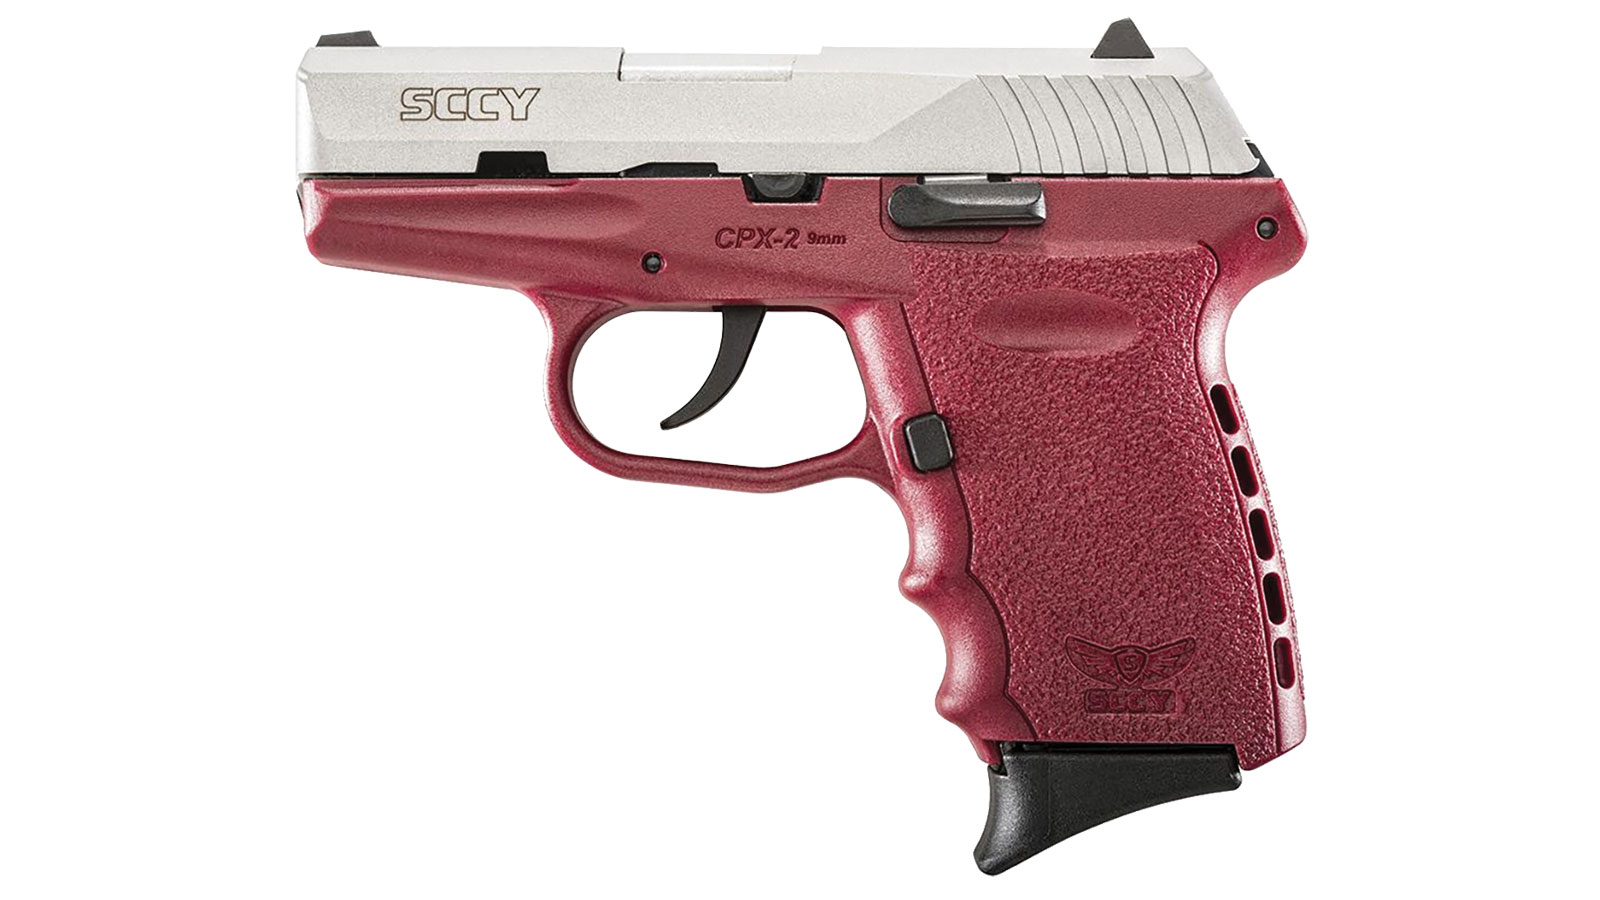 SCCY Industries CPX2TTCR CPX-2 Double 9mm 3.1 10+1 Crimson Polymer Grip|Frame Grip Stainless Steel in.